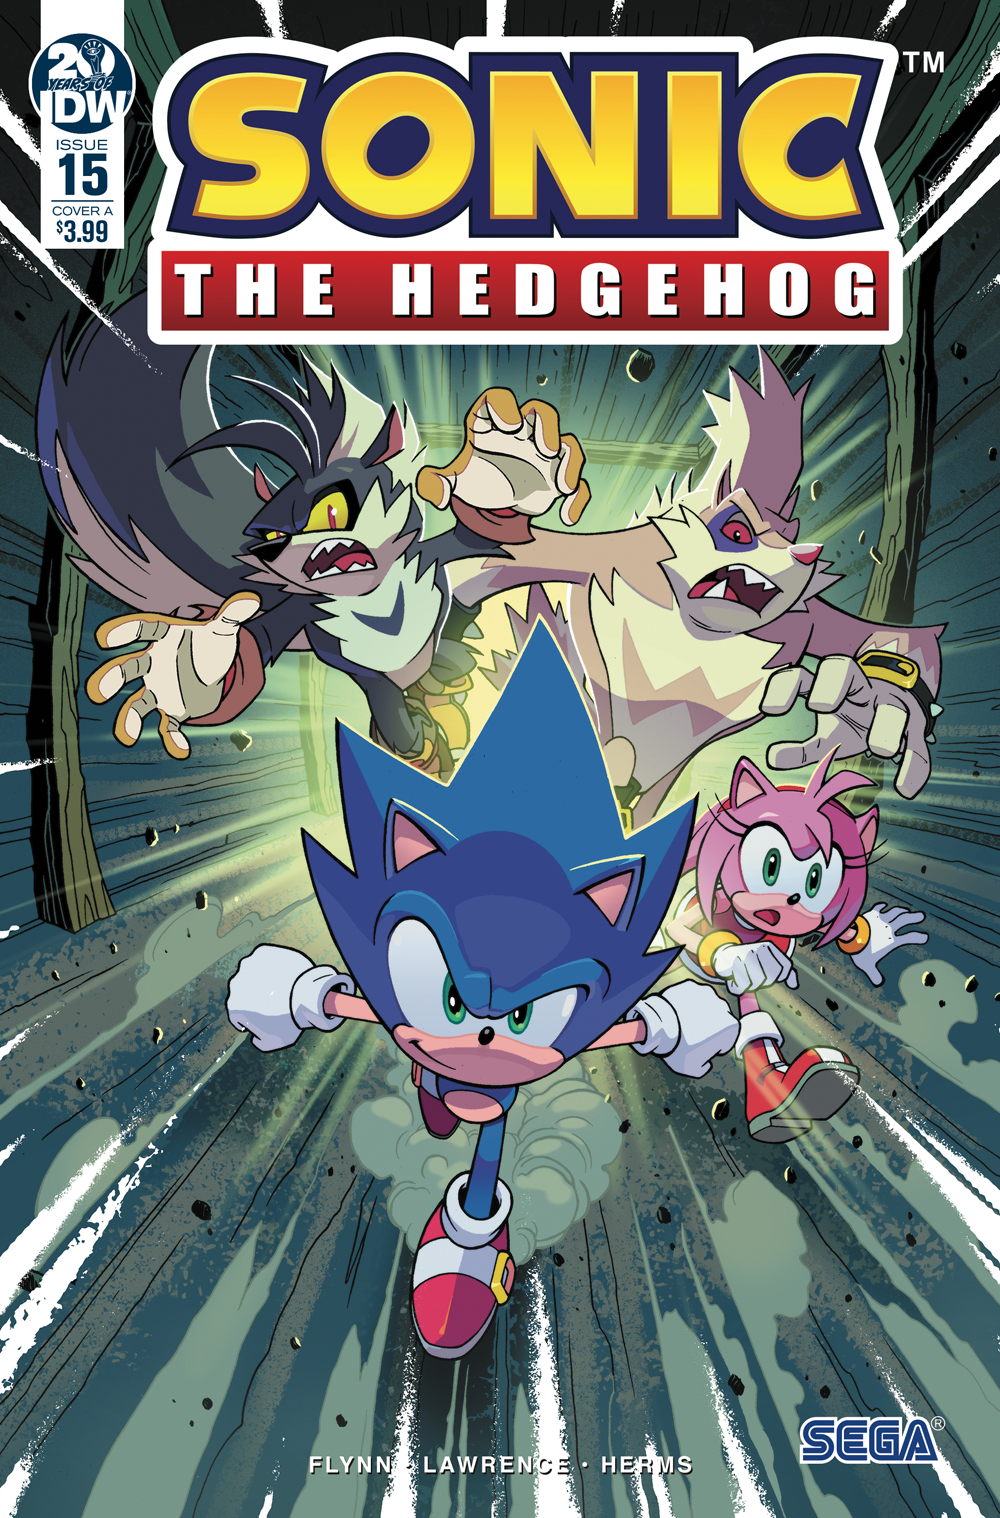 SONIC THE HEDGEHOG #15 CVR A LAWRENCE